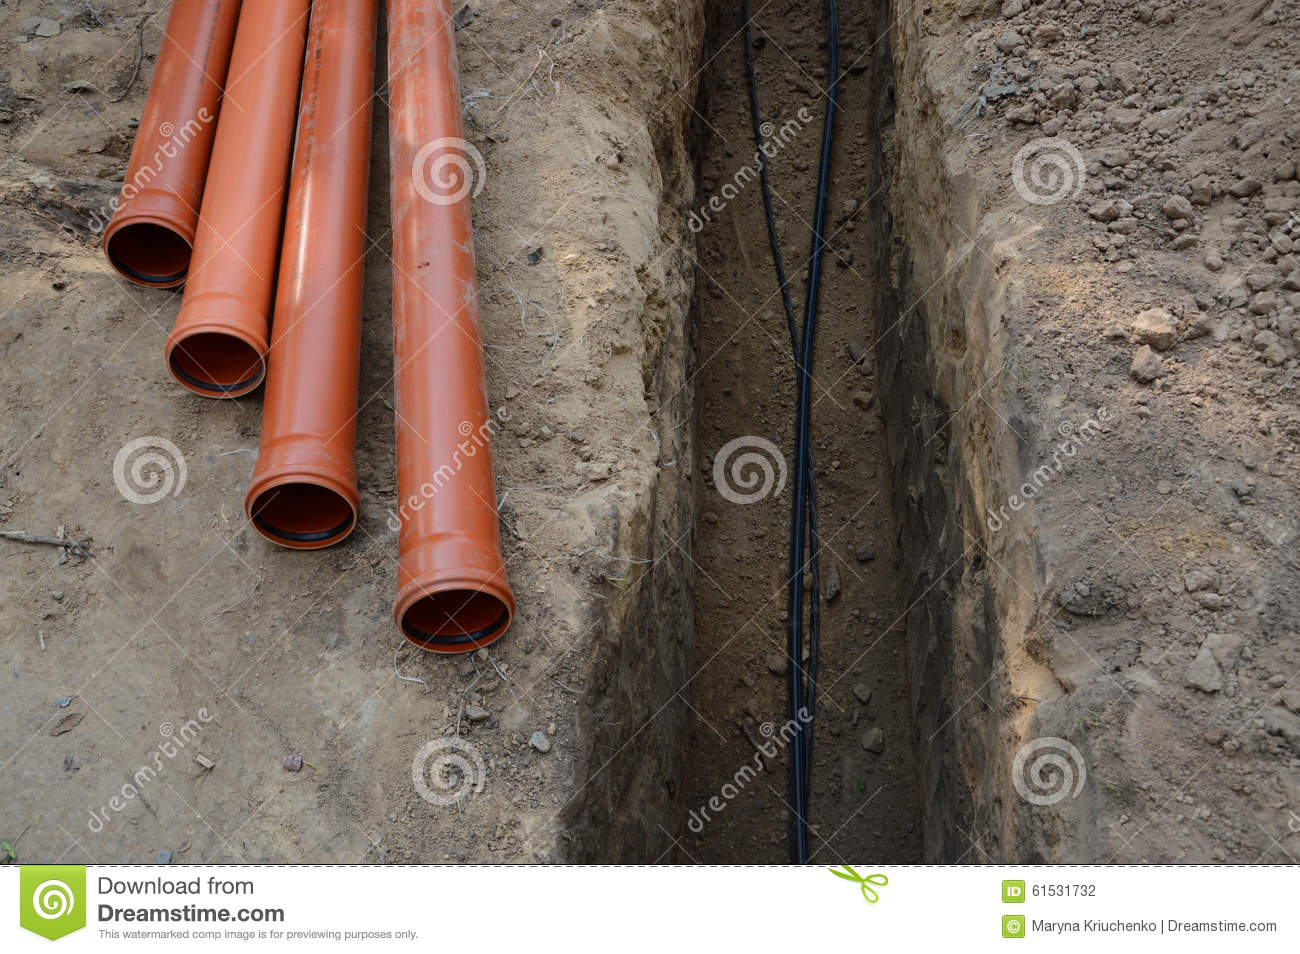 Laying Of Cables And Pipes In The Trench Stock Photo